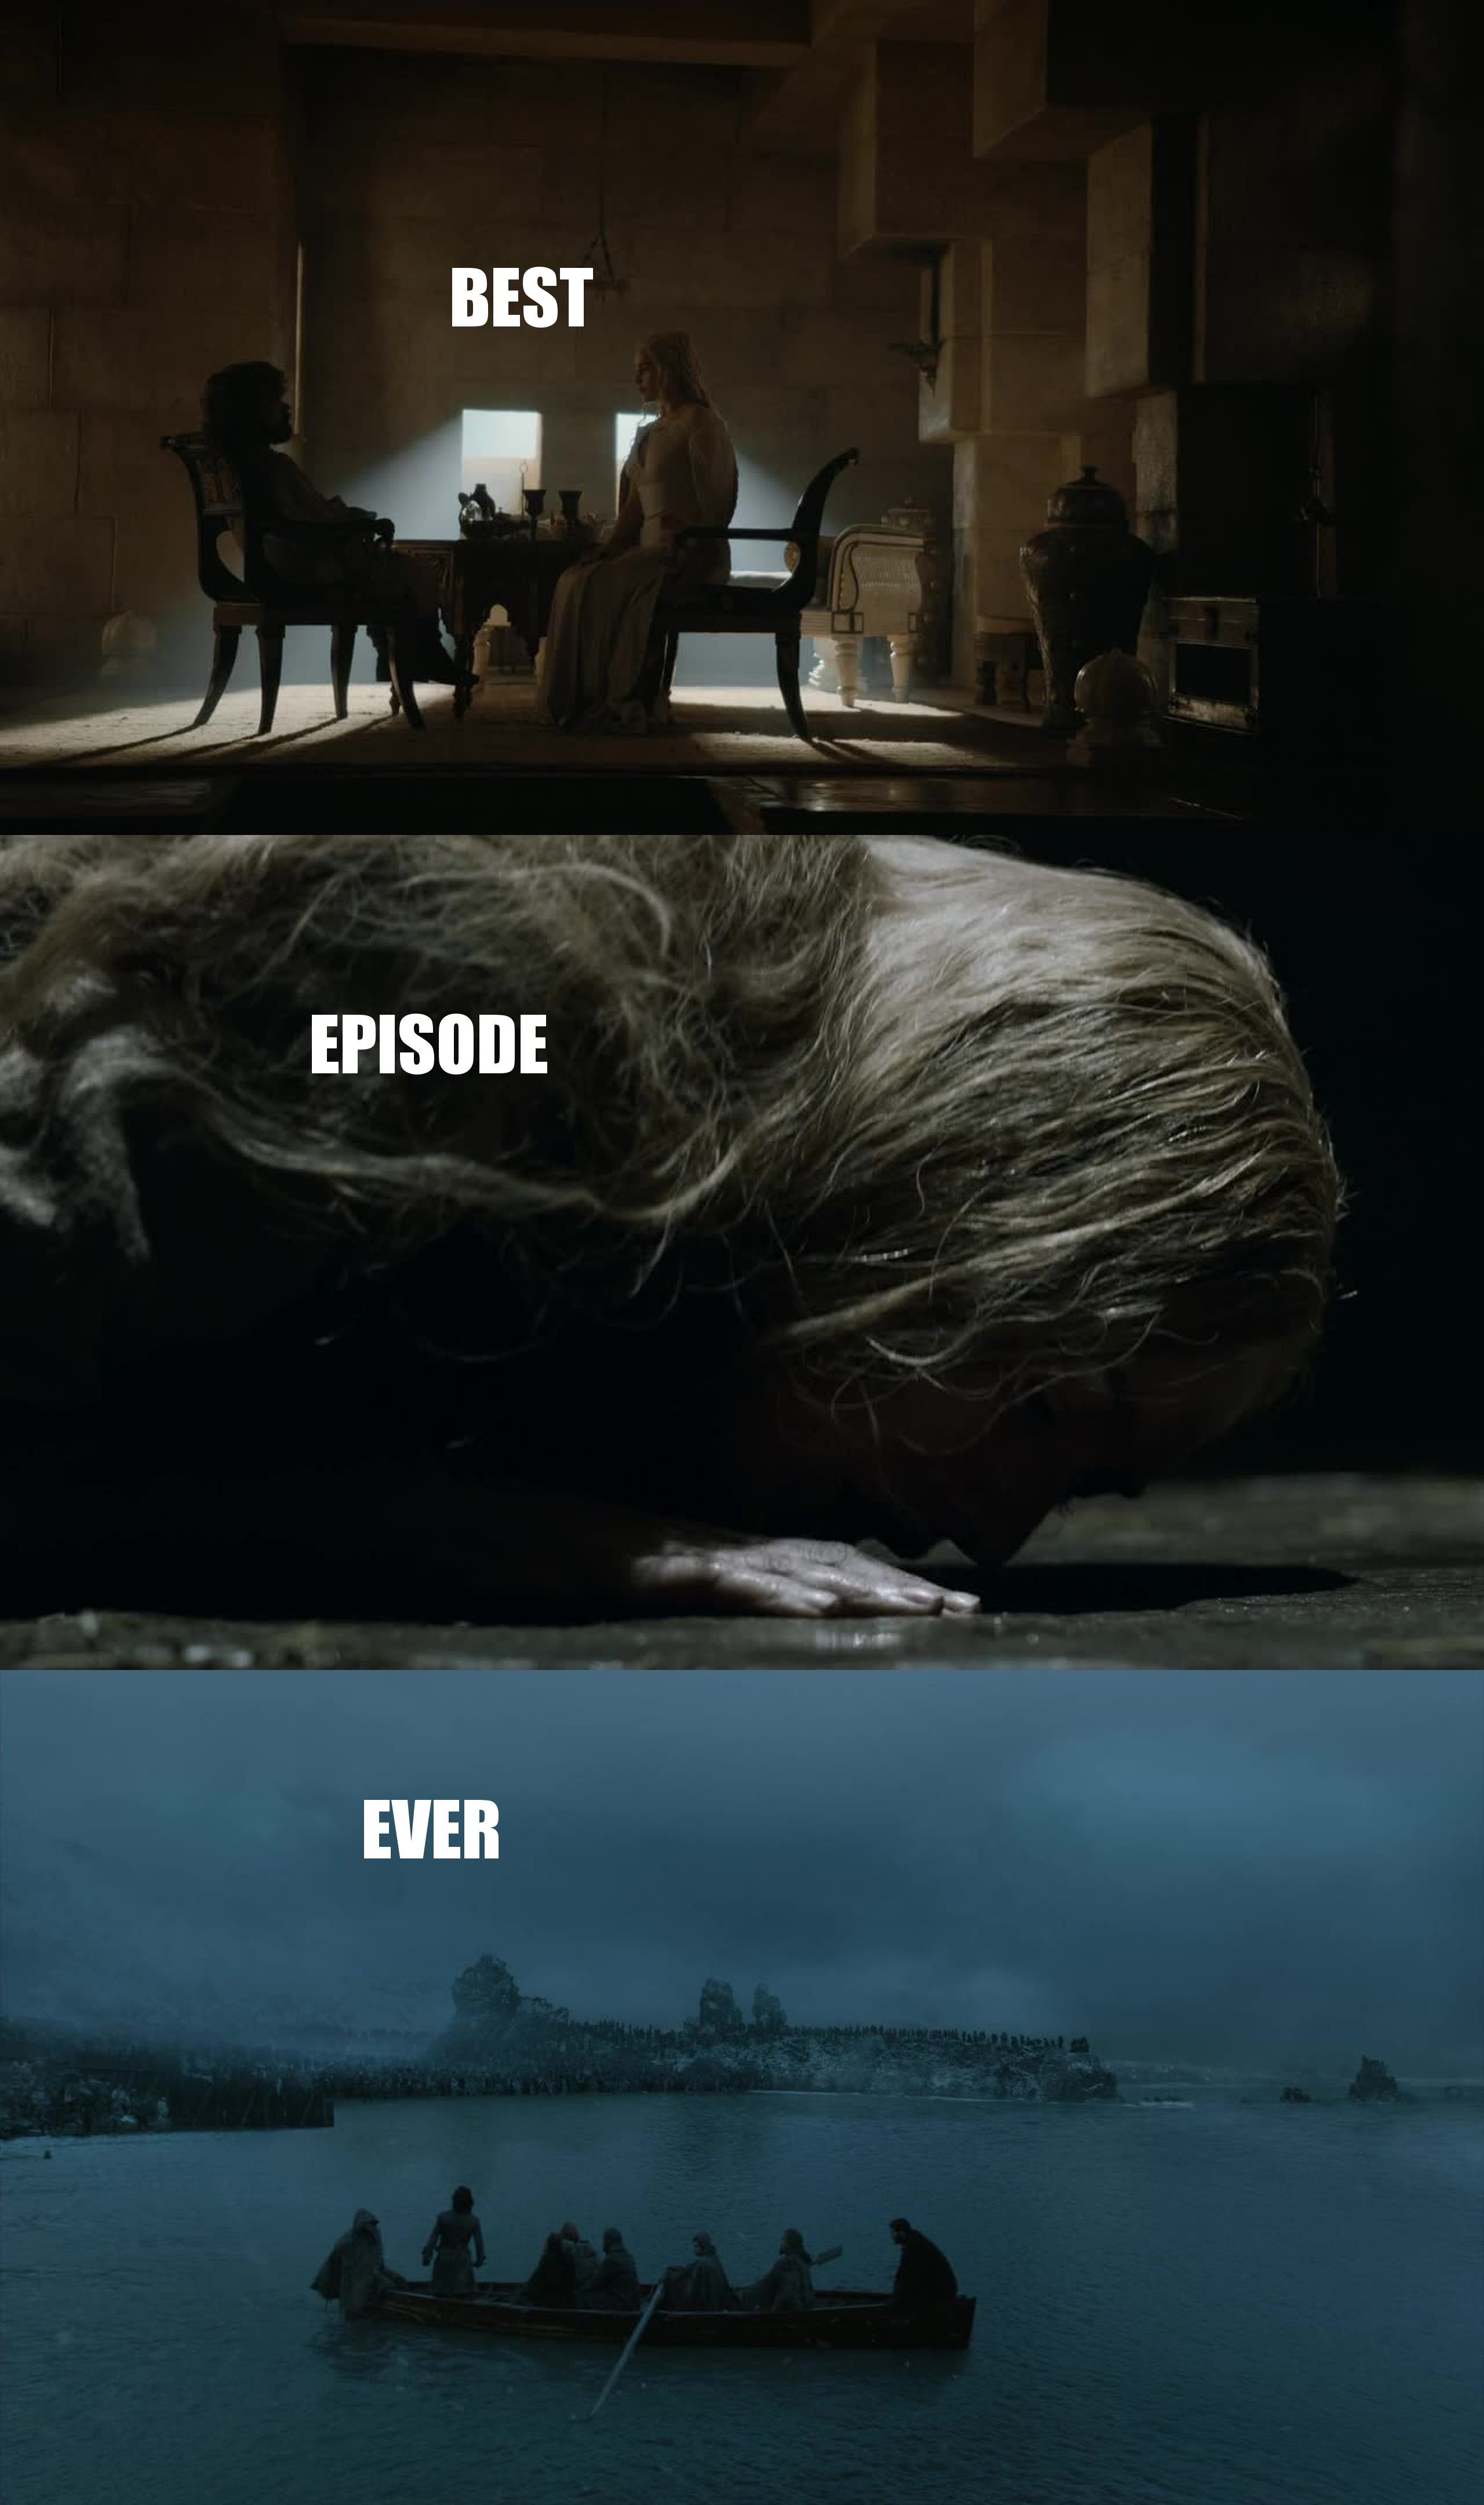 This was by far the best episode of Game of Thrones! The last scene ... omg ... I won't be able to sleep after that. And, for God sake .... HOW AM I SUPPOSED TO WAIT ONE WEEK FOR EPISODE 9!